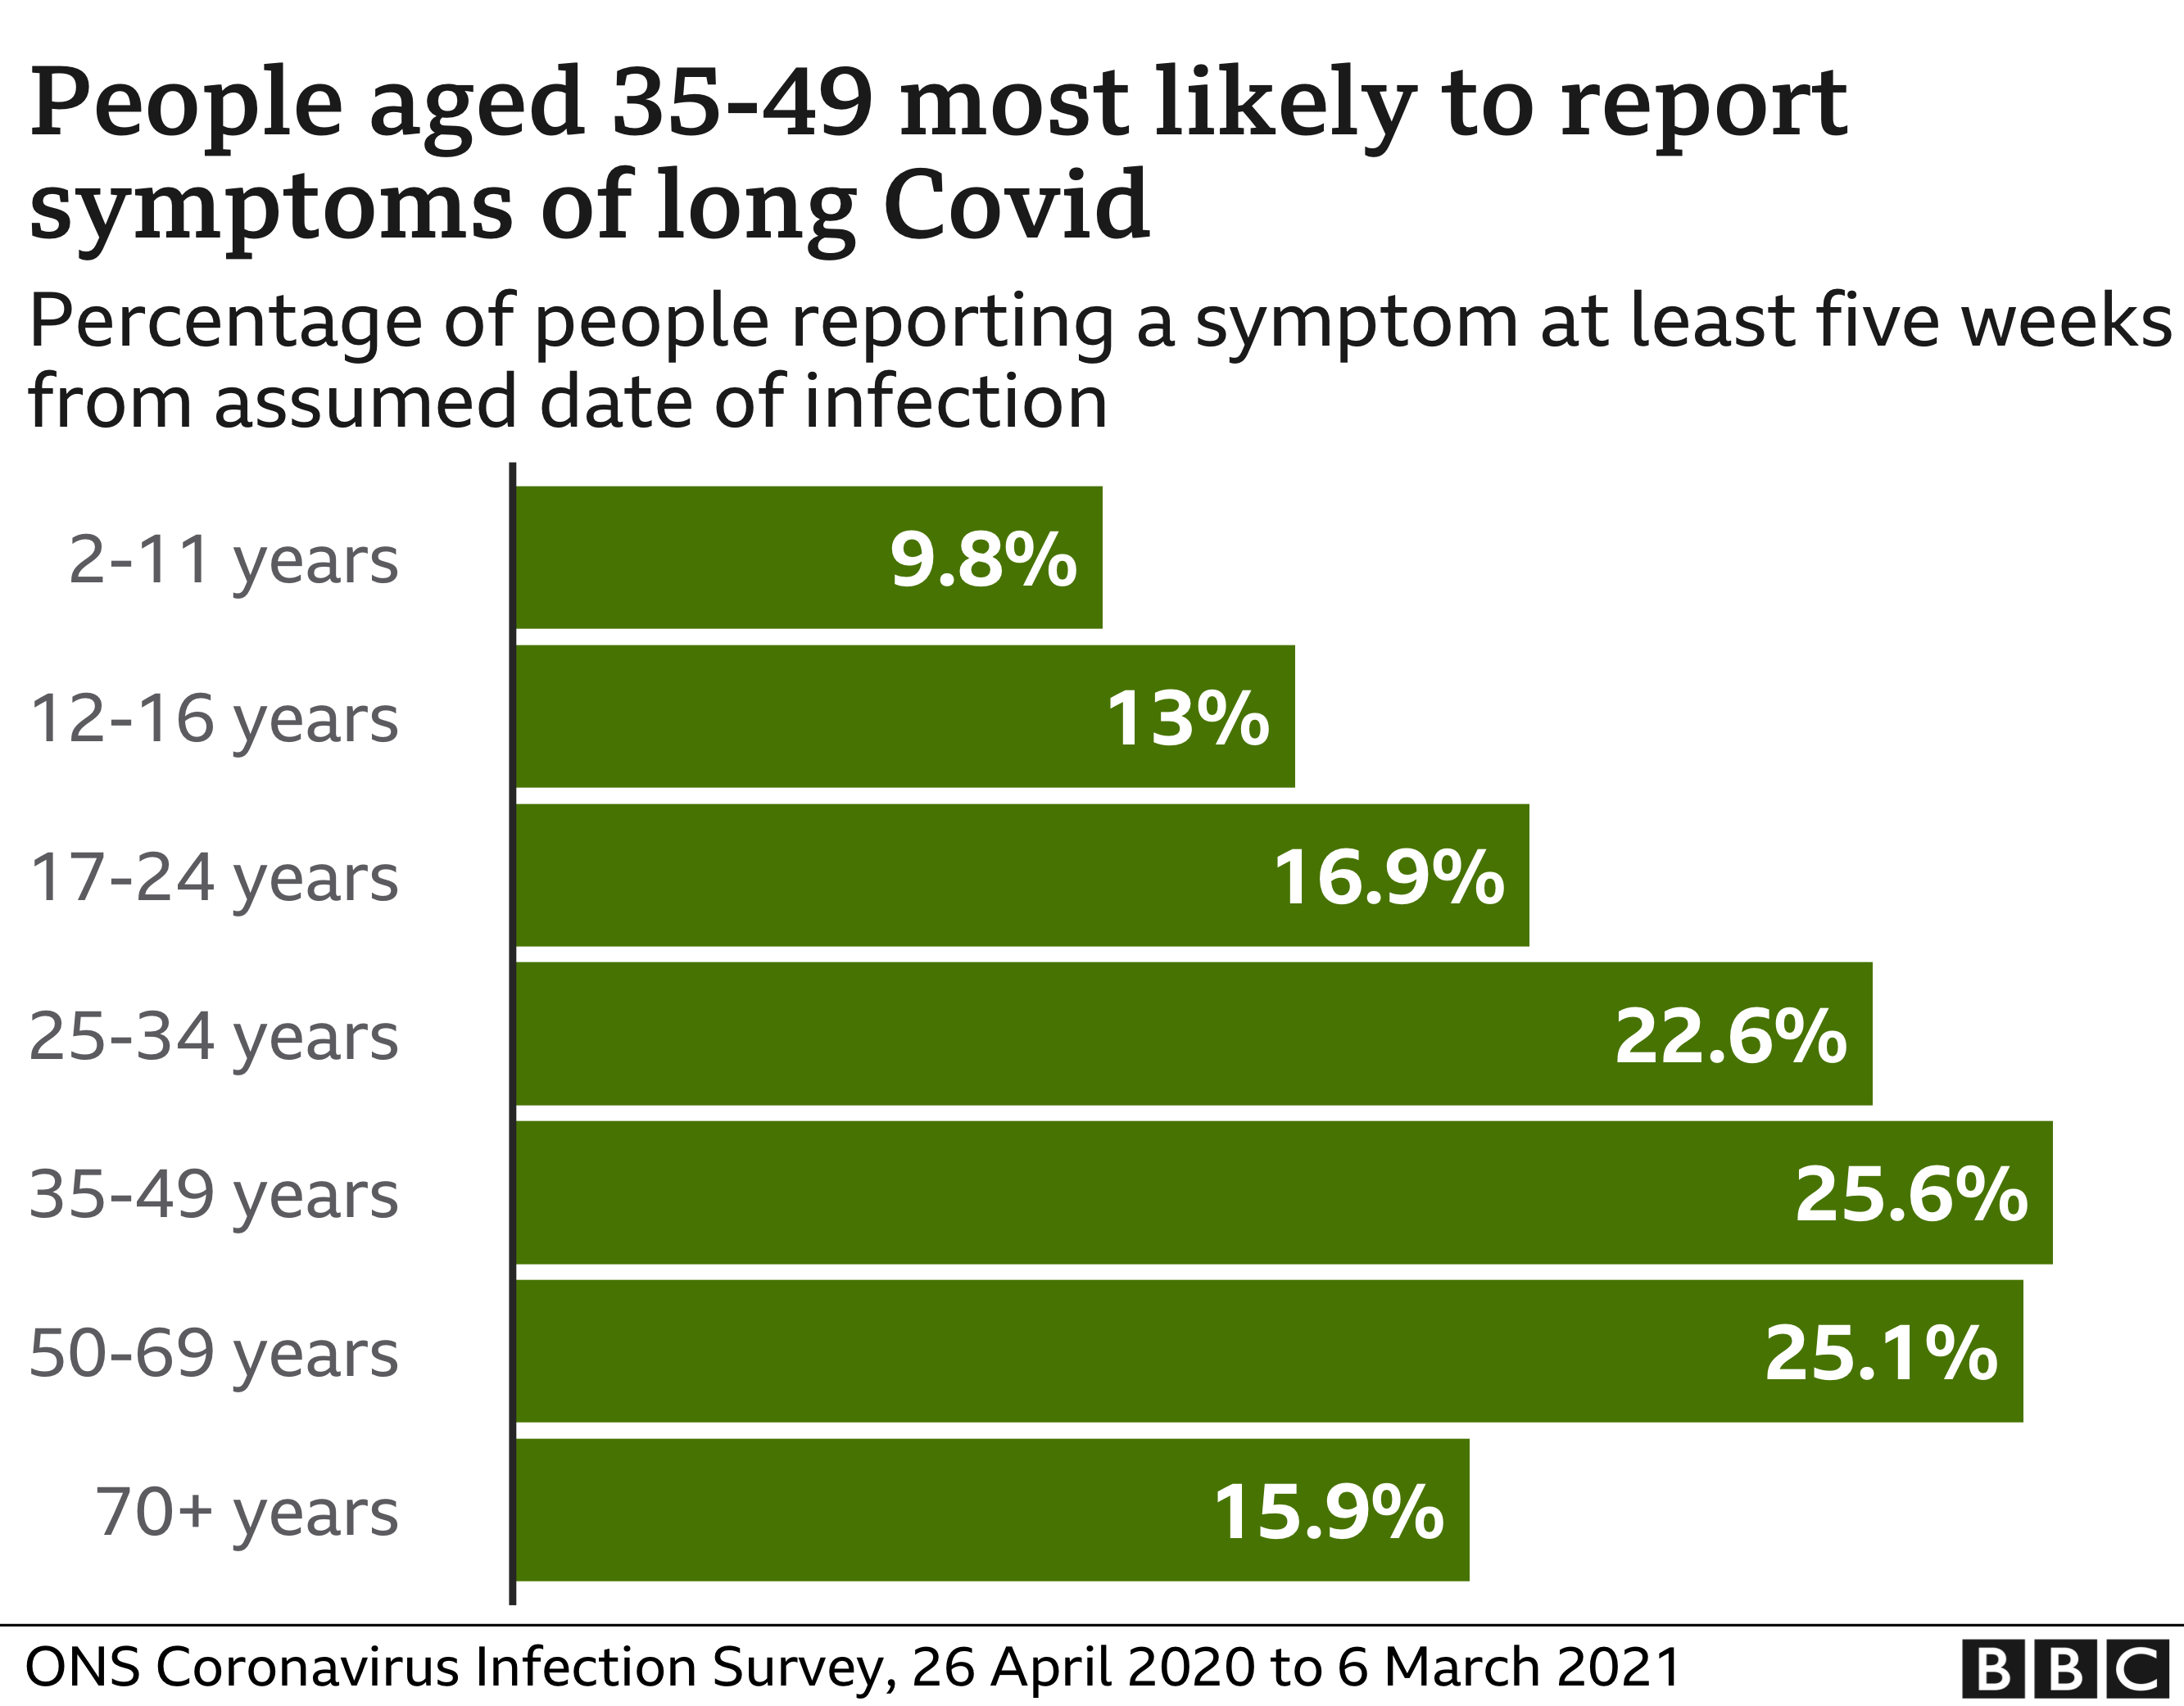 Age groups most likely to report symptoms